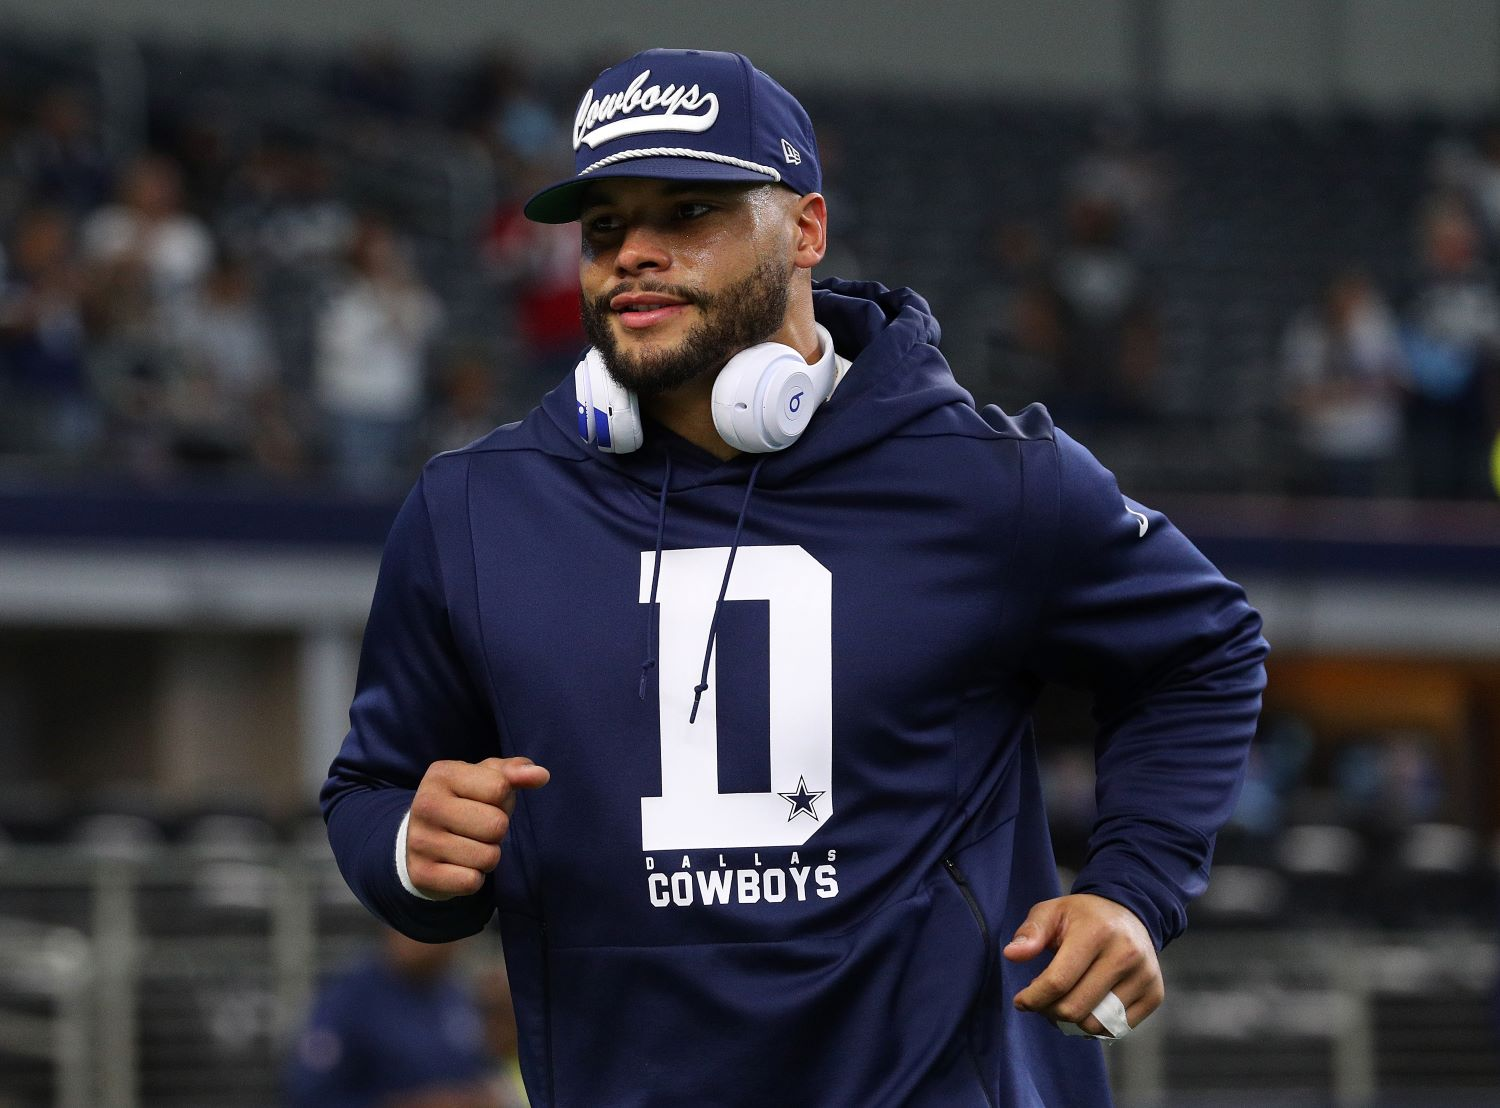 Cowboys CEO Stephen Jones provided an encouraging update on Dak Prescott, but will Dallas still sign him to a massive contract extension?